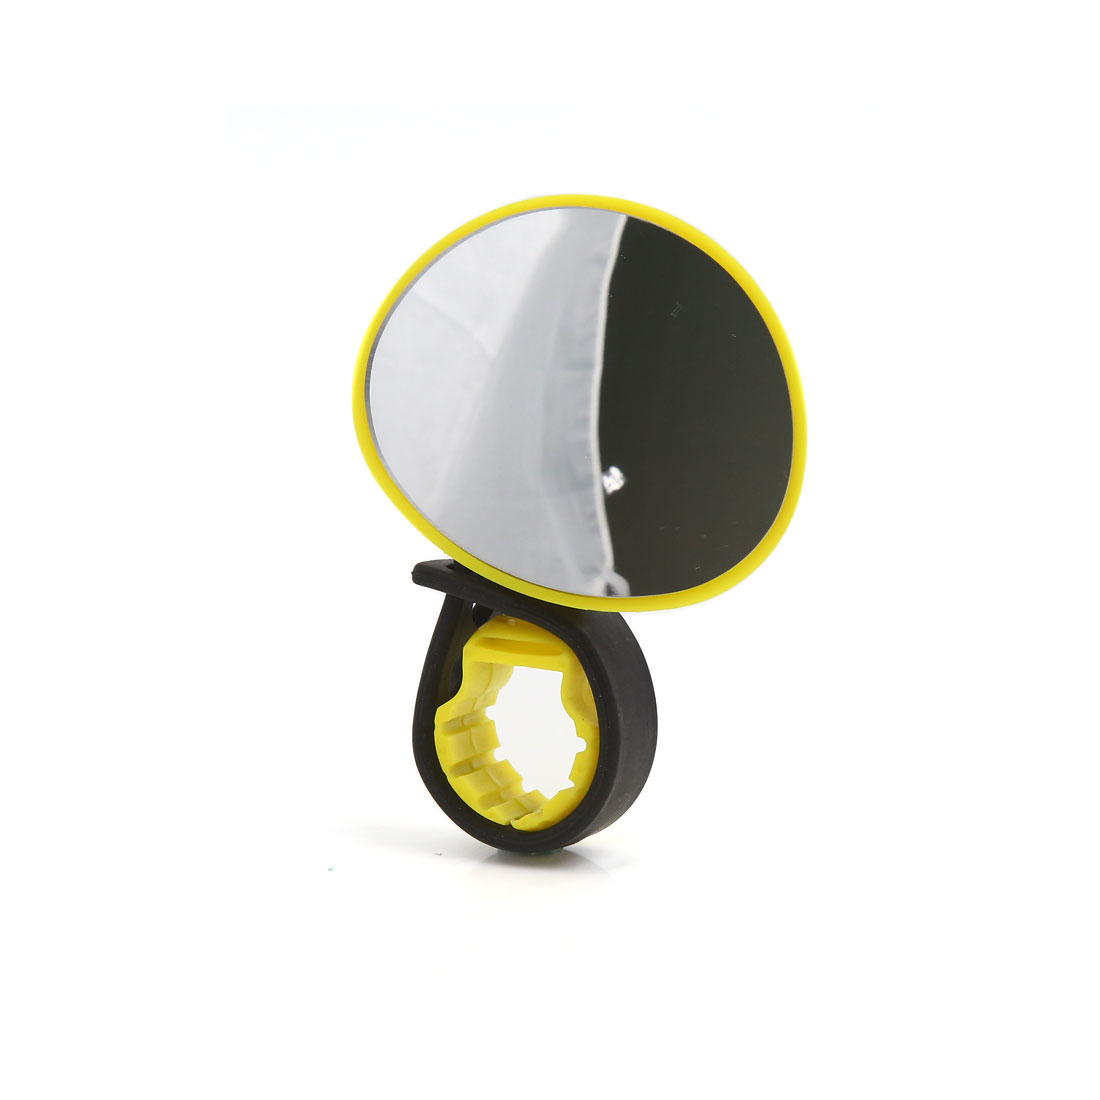 Yellow 360 Degree Rotatable Adjusting Handlebar Rear View Mirror for Cycling